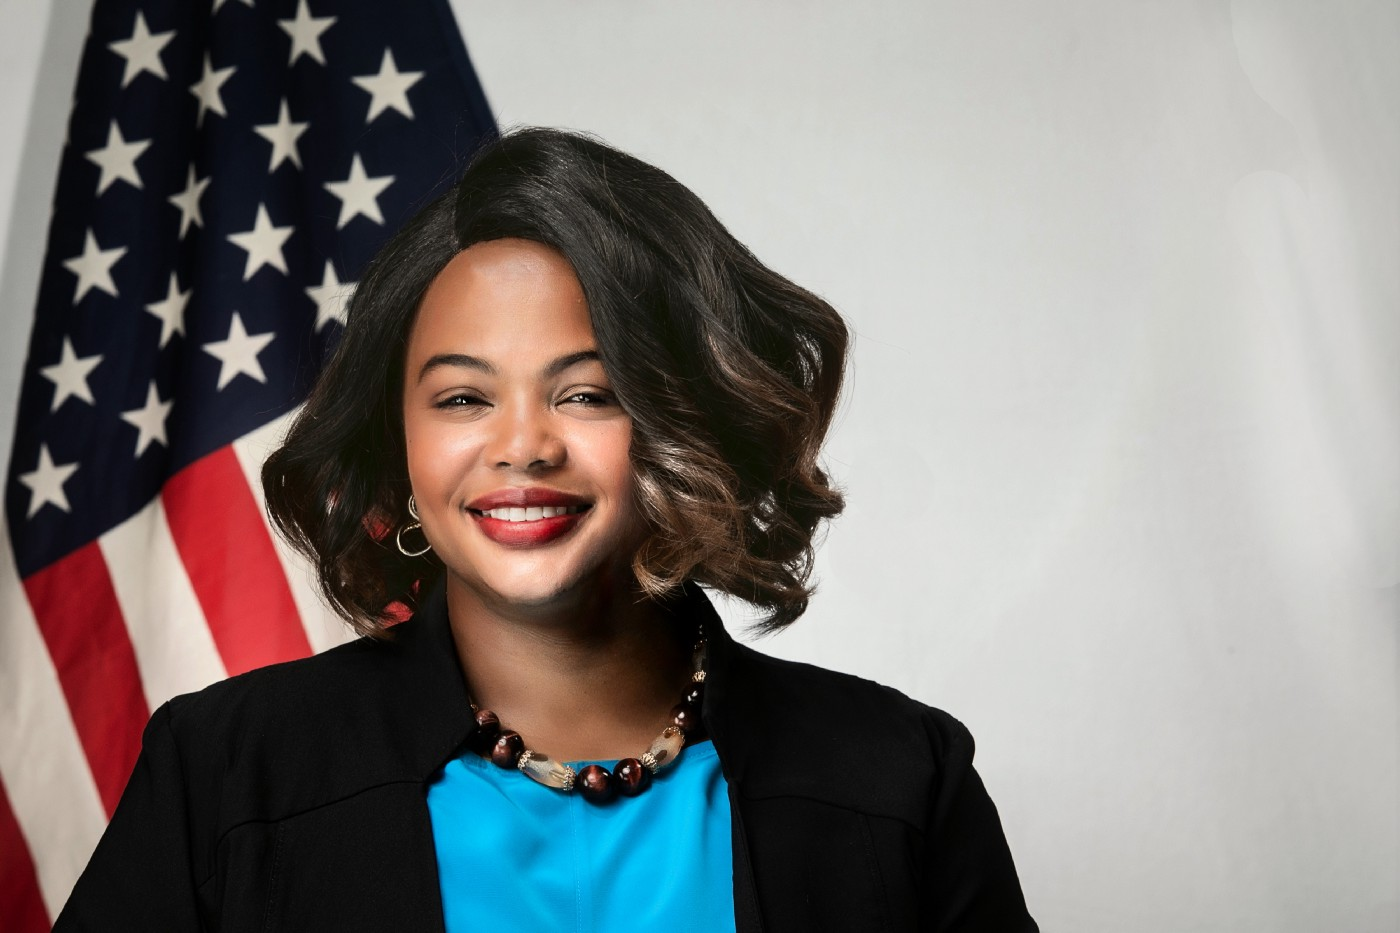 Charlene Eads, candidate for IL House of Representatives, District 79